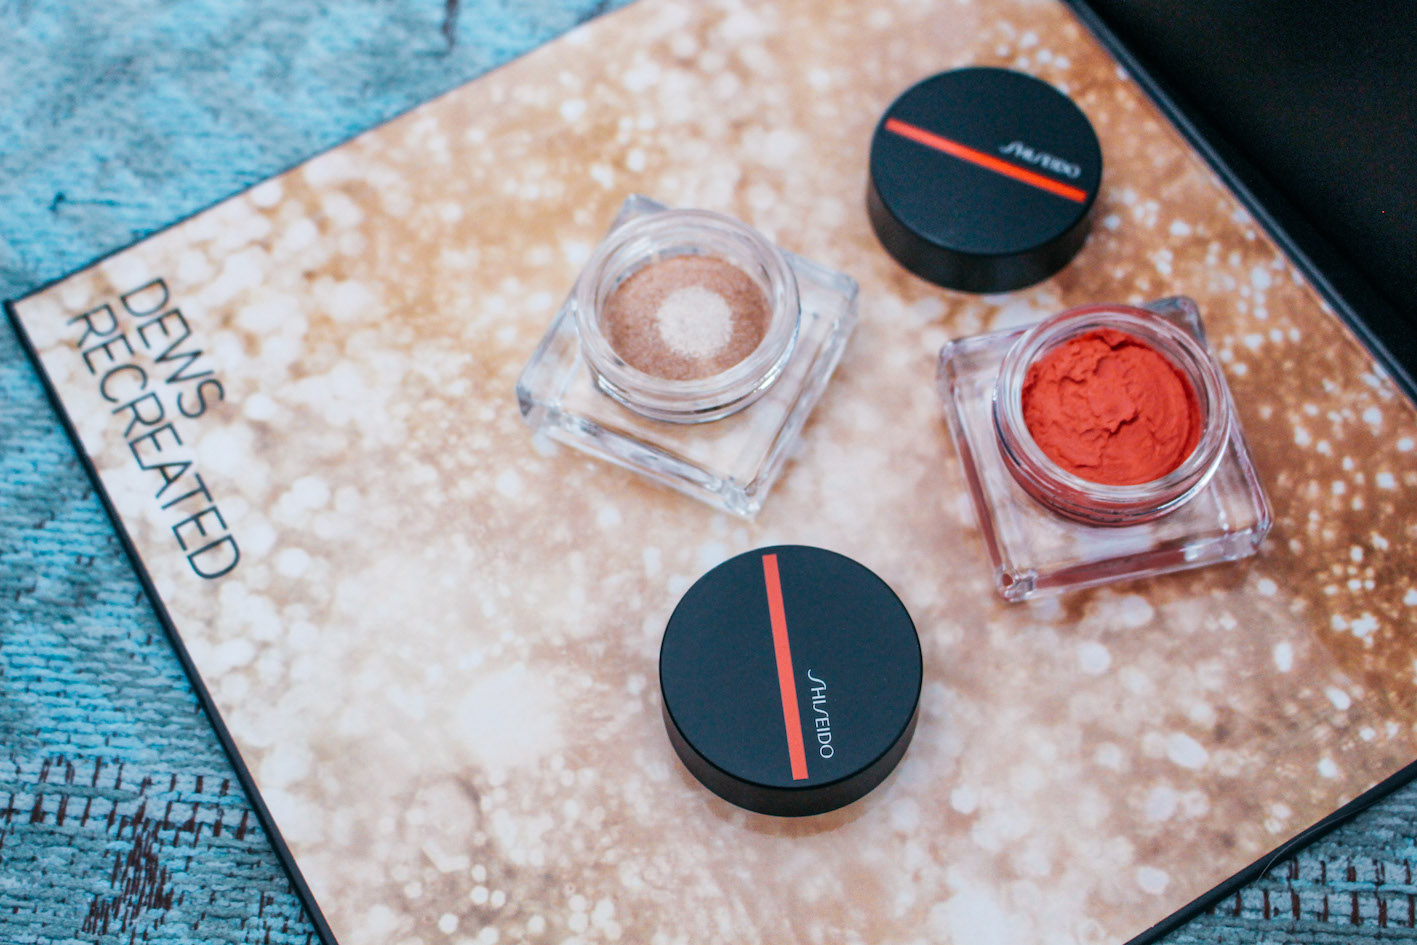 floortjeloves, shiseido, make-up, makeup, beauty, the new beauty experience, powders reinvented, inks redefined, gels rediscovered, dews recreated